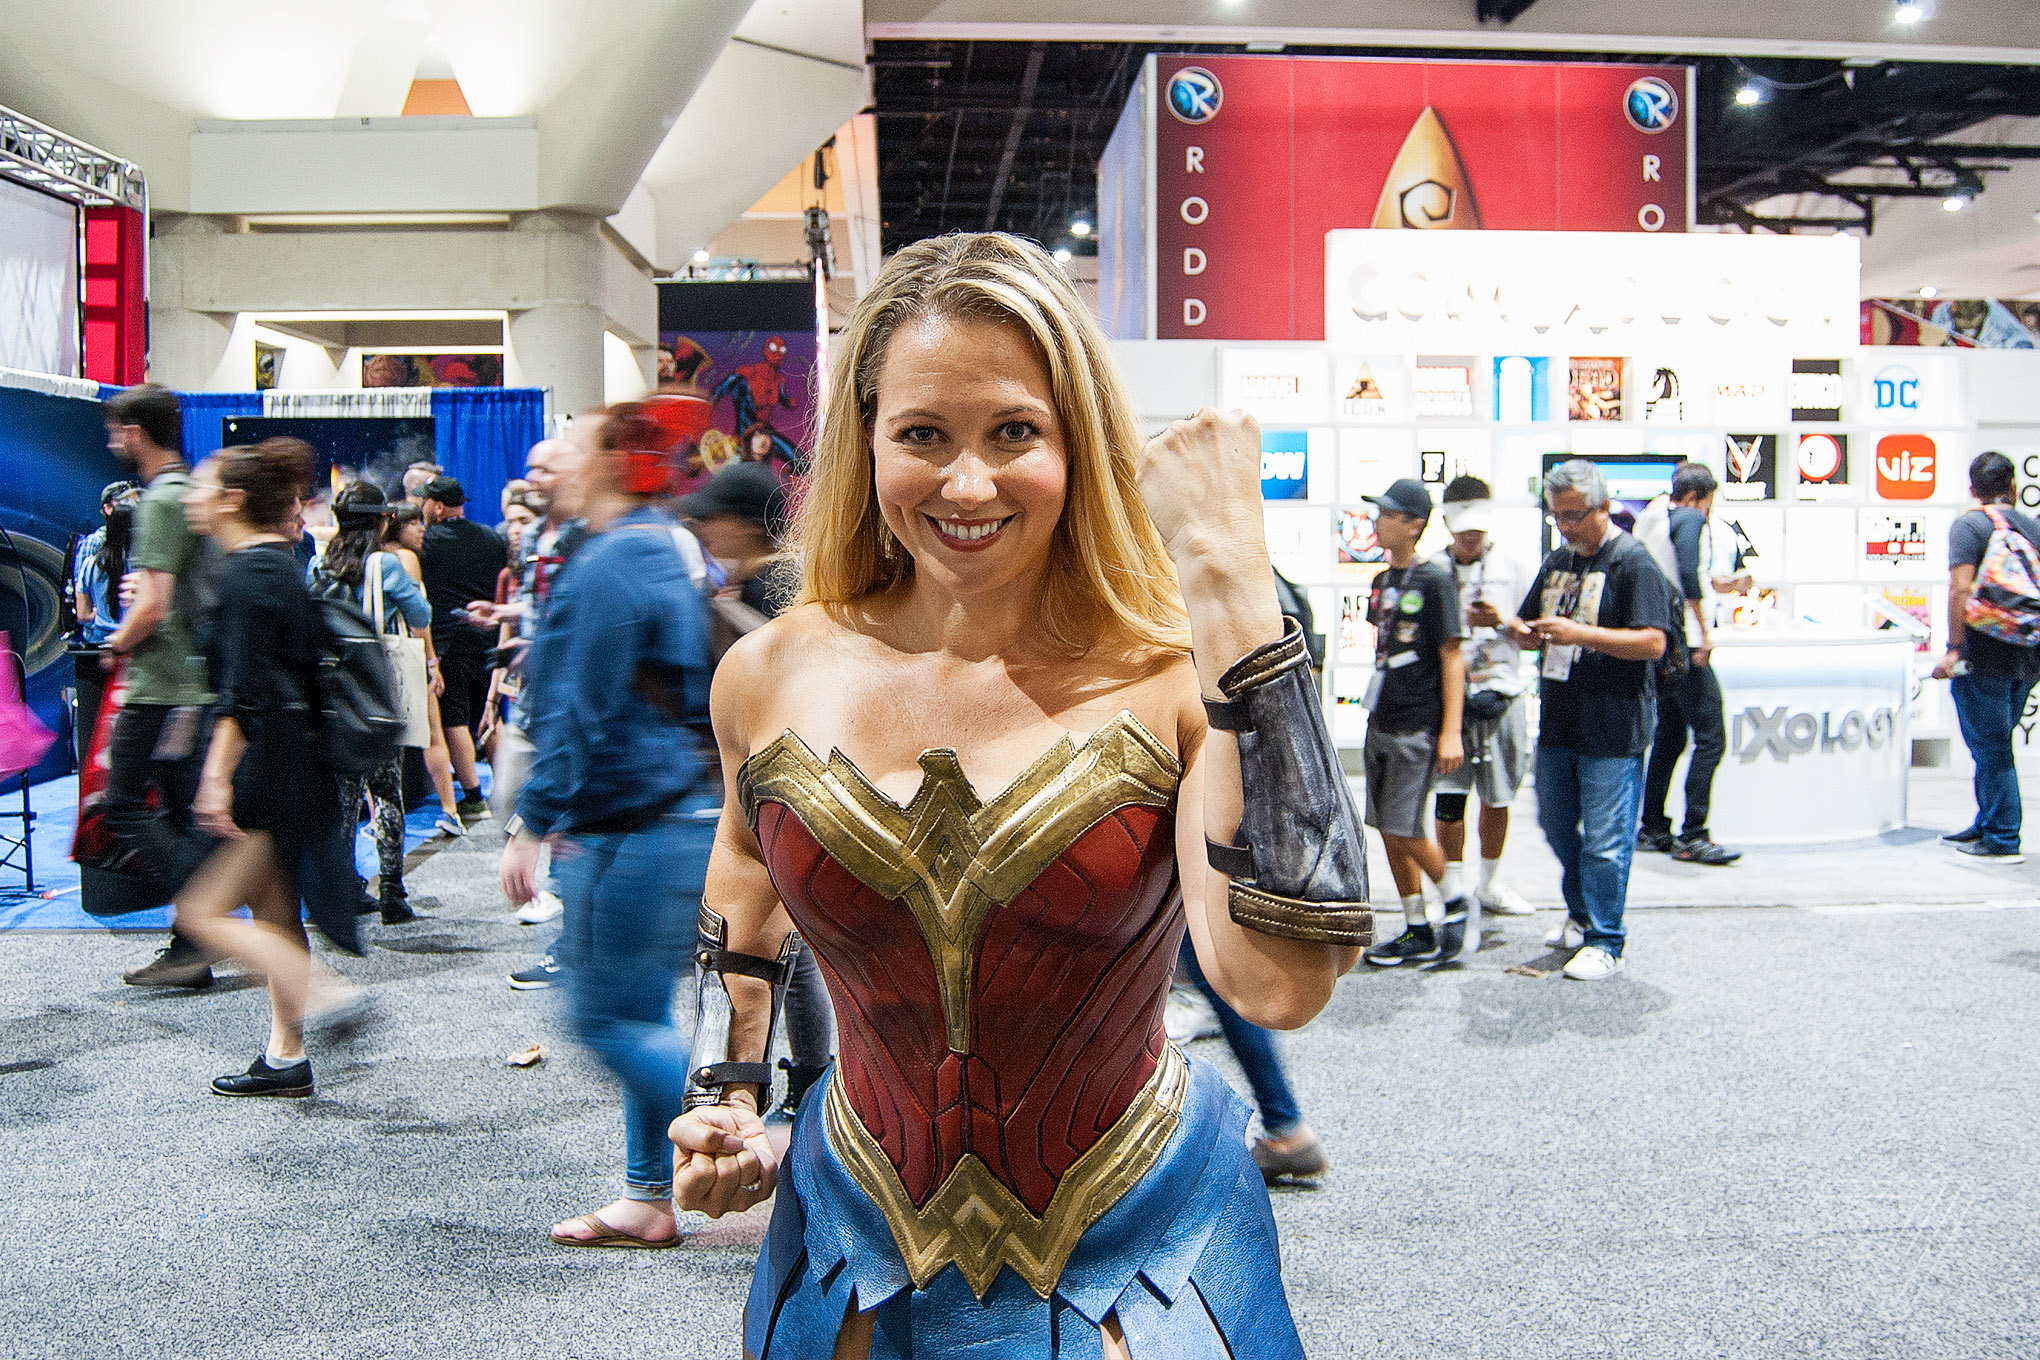 The Popularity Of Wonder Woman Cosplay At Comic Con Is A